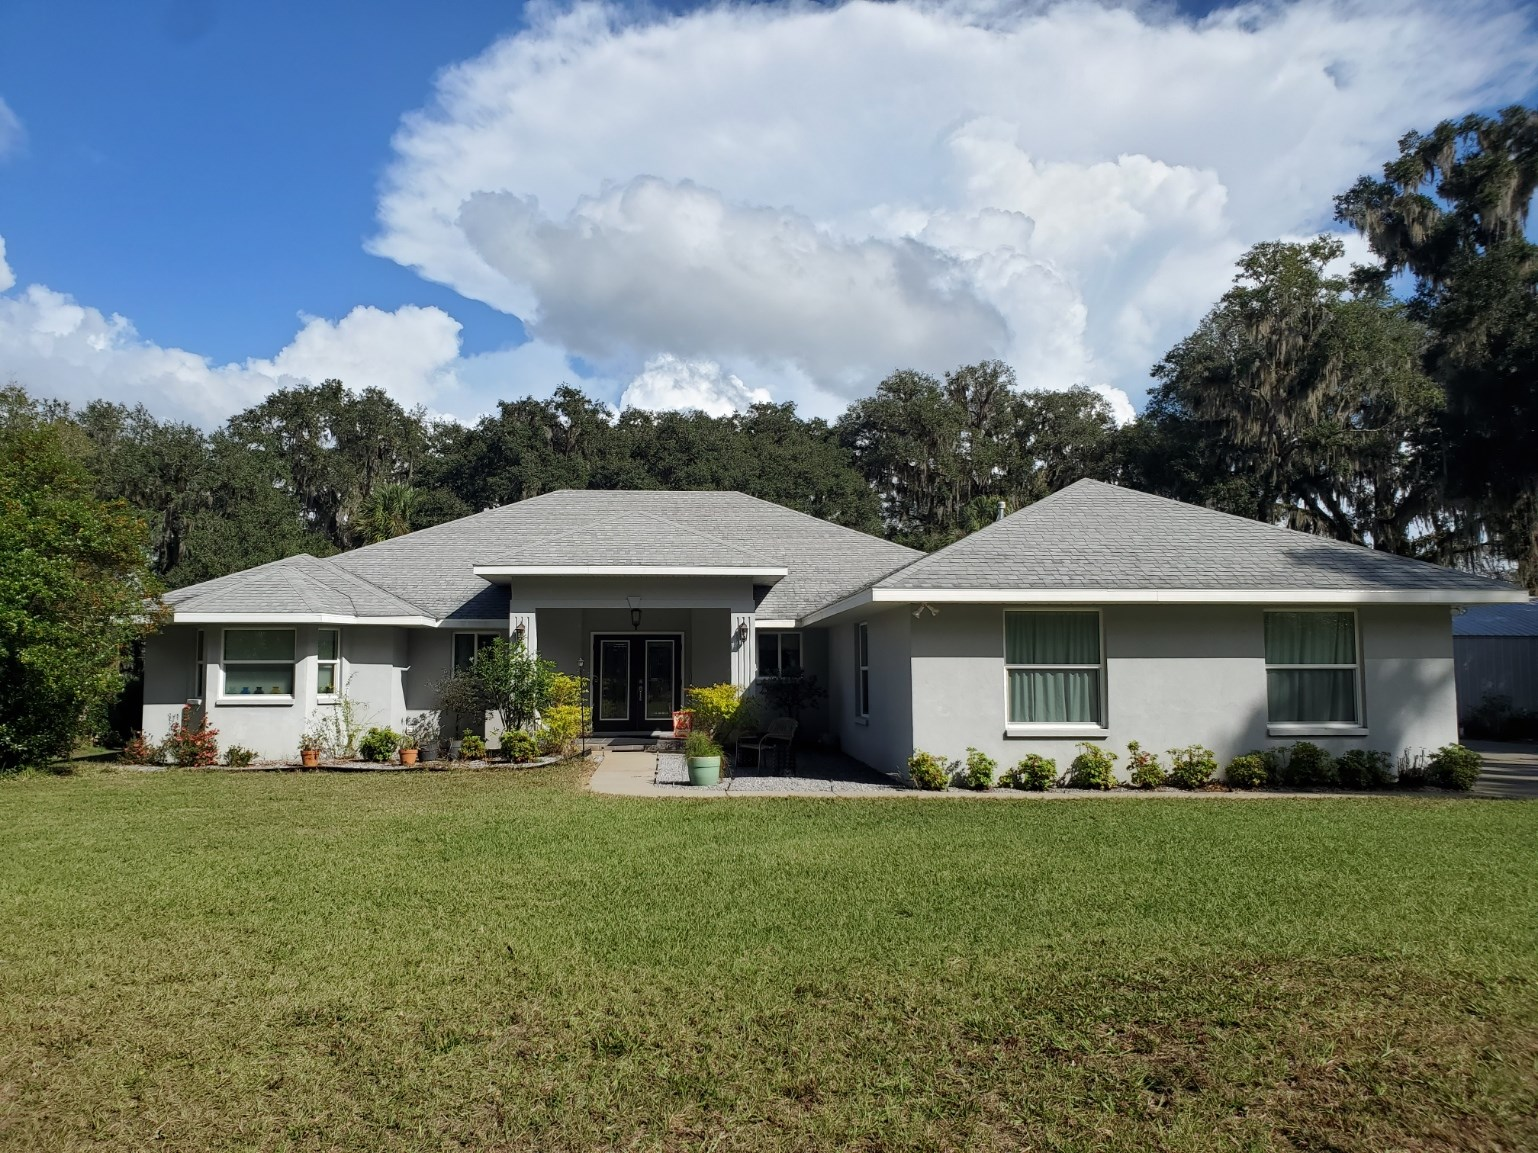 CB Home 2 acres 3BR/2BA on Long Pond, Chiefland, Levy County